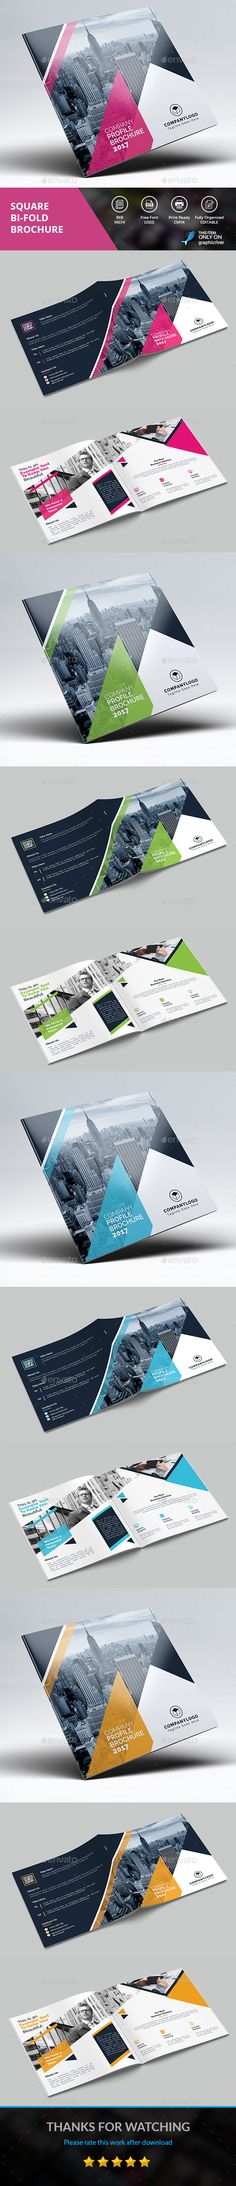 Square Brochure Template PSD